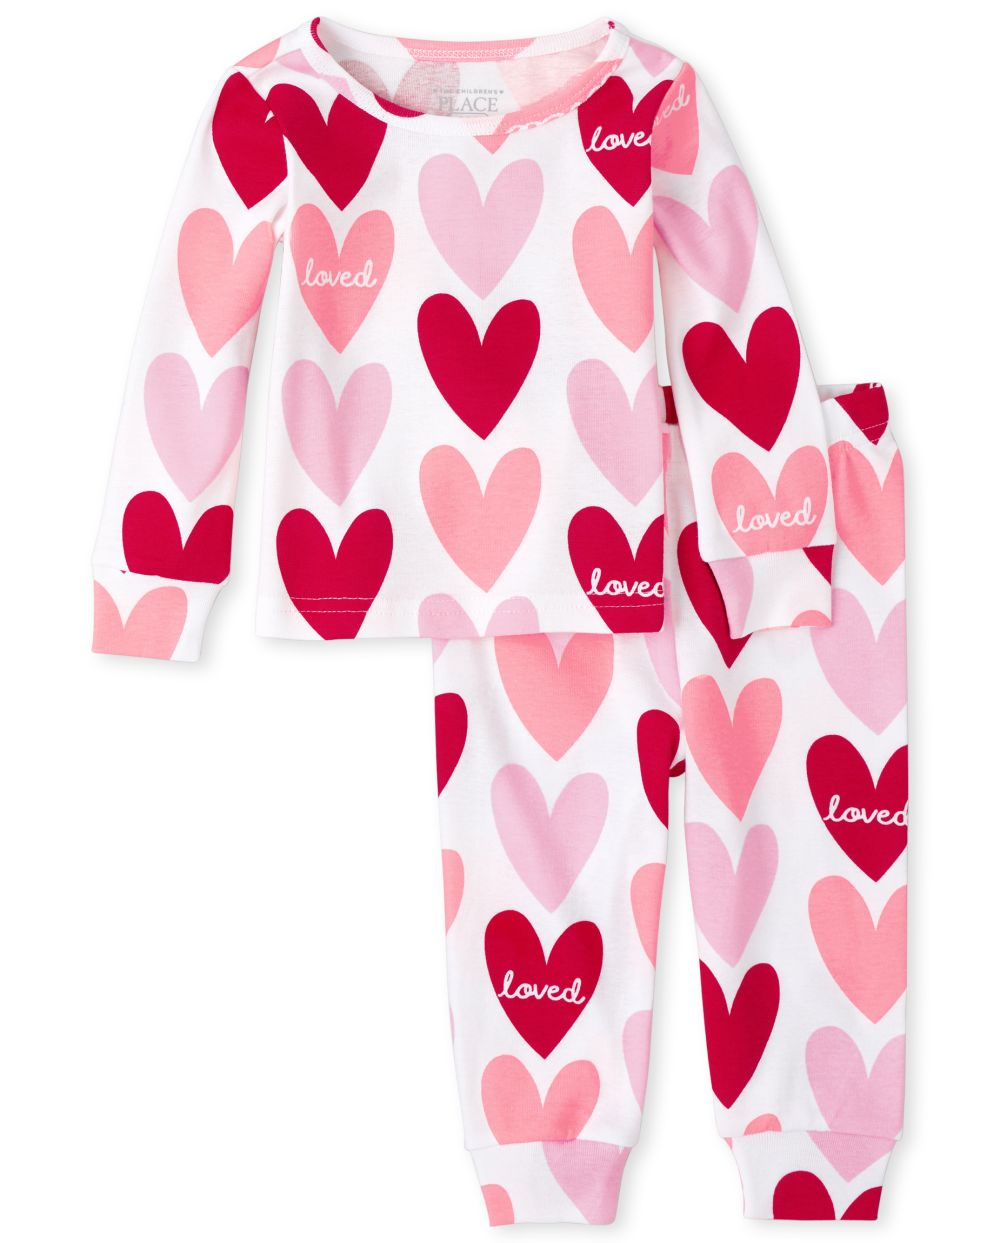 Baby And Toddler Girls Hearts Snug Fit Cotton Pajamas